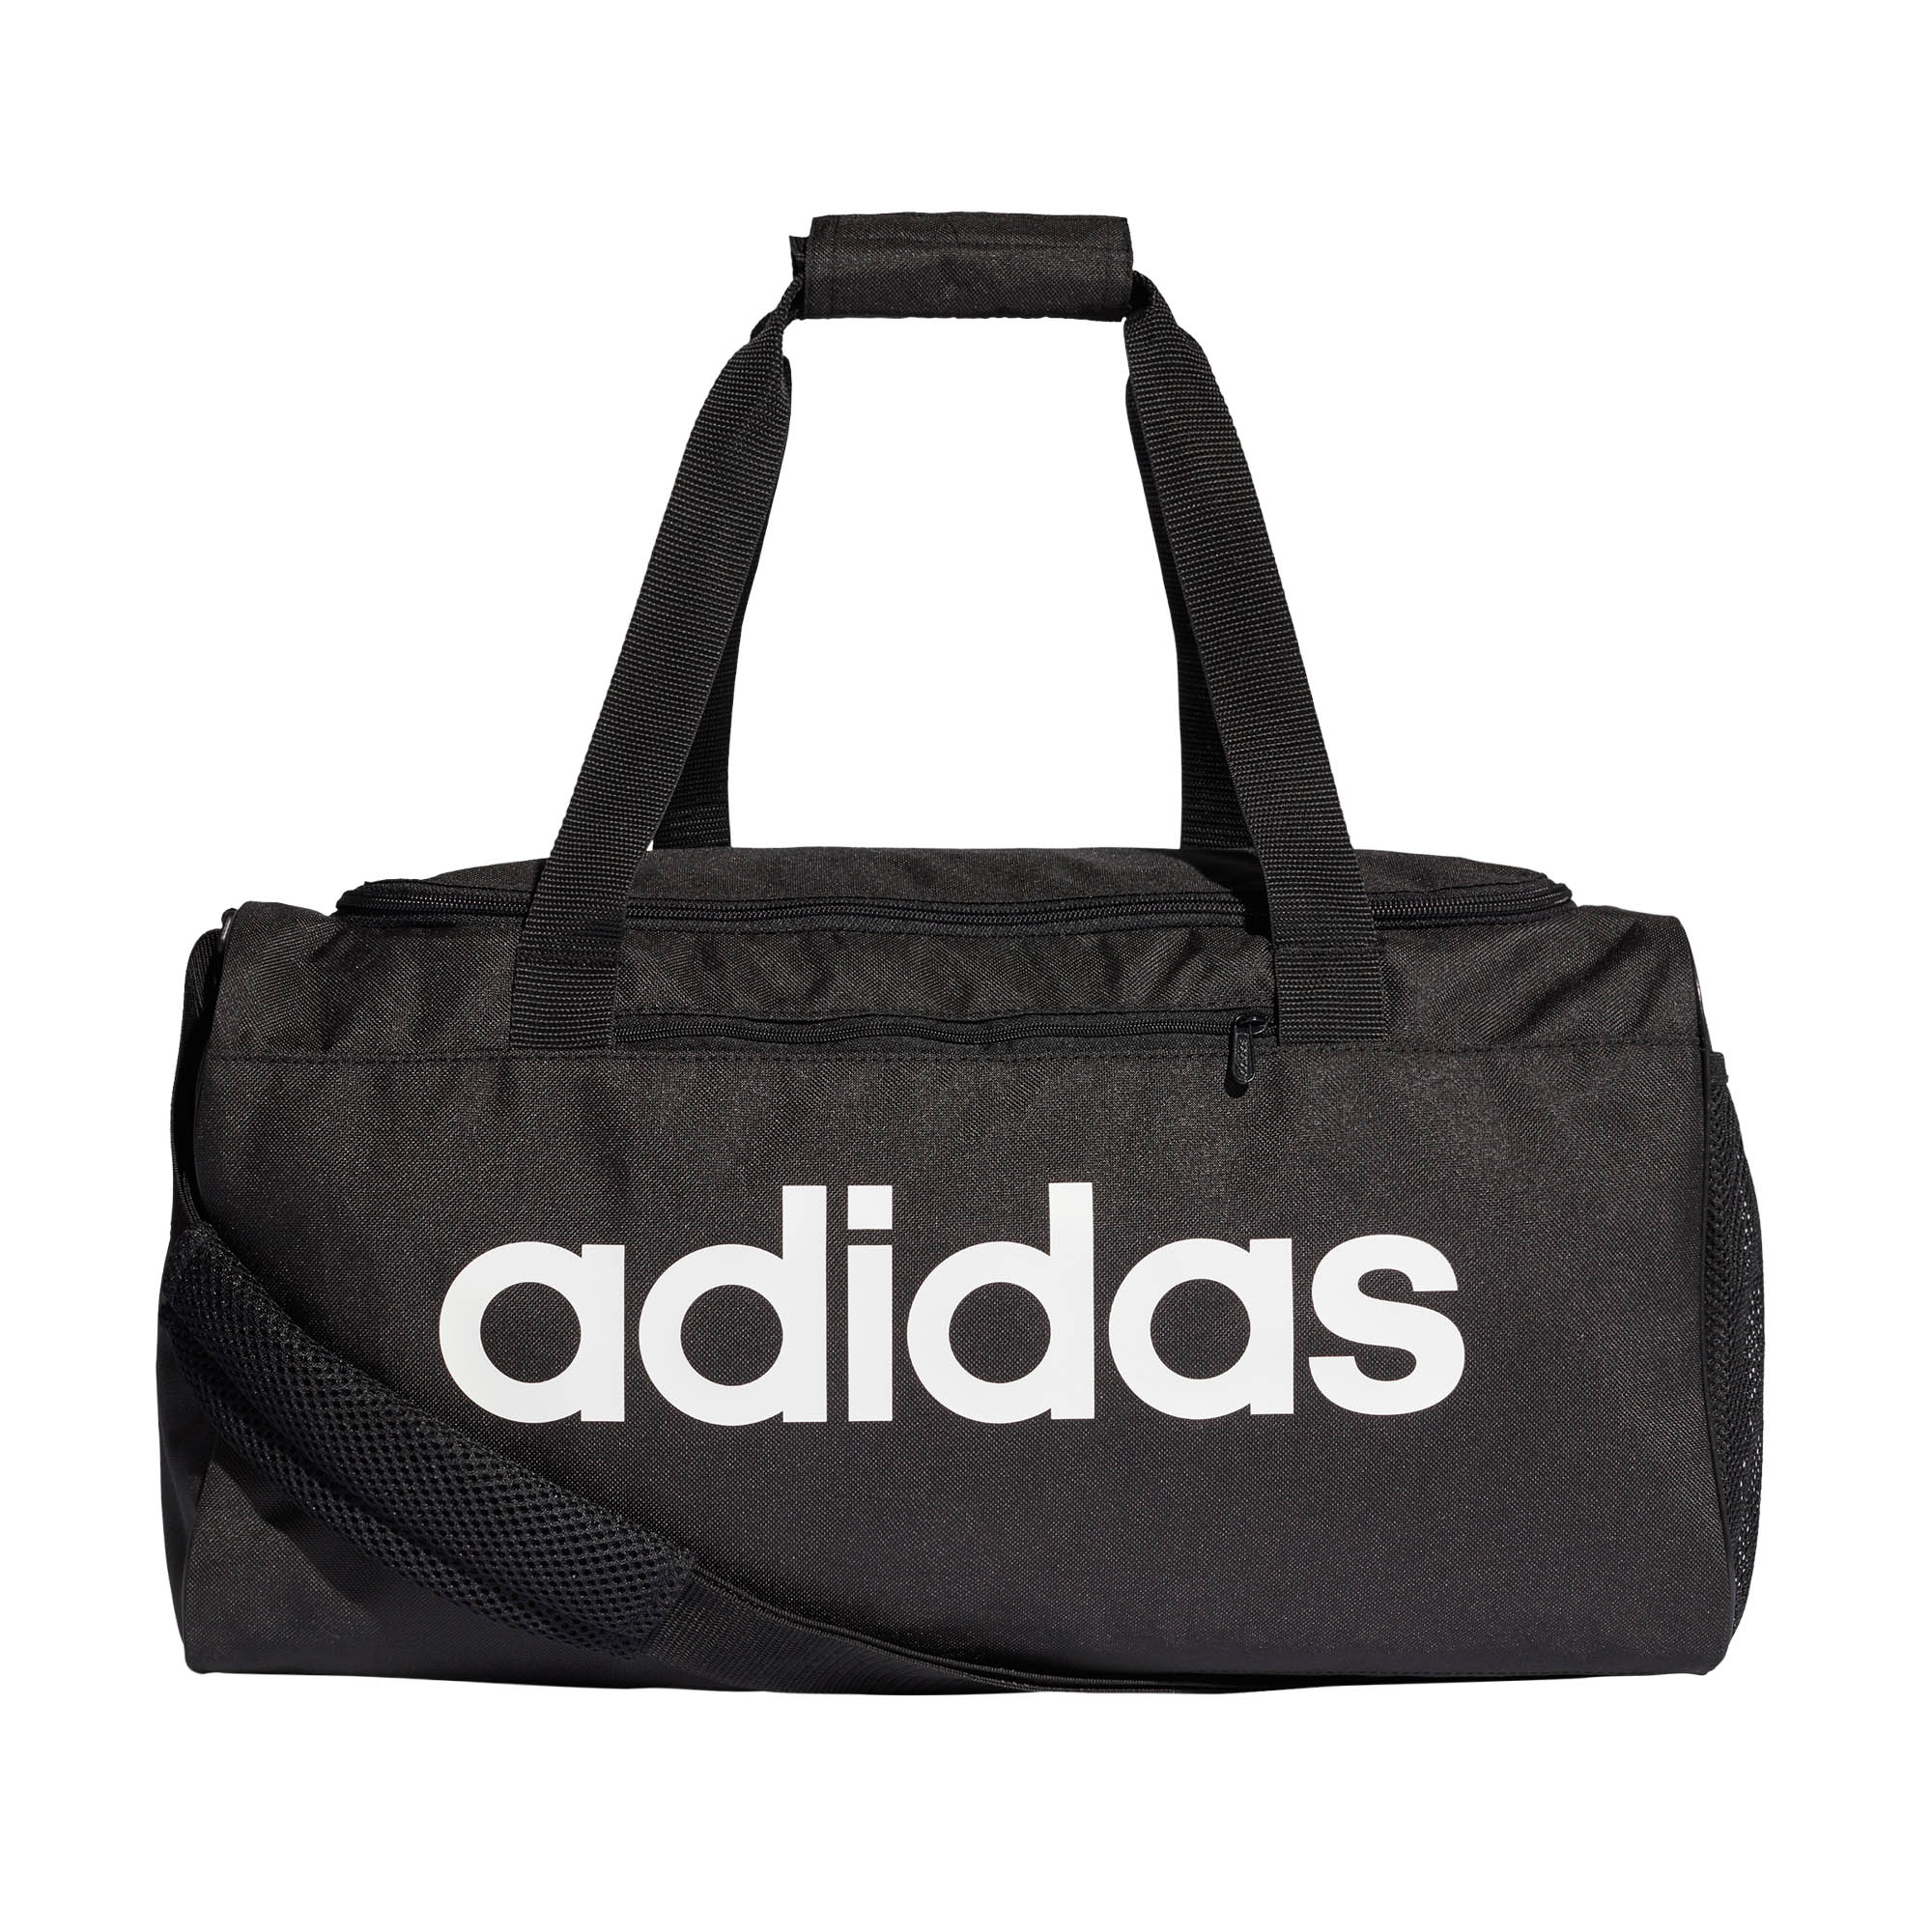 Details about adidas Linear Core Team Sports Gym Duffel Holdall Bag Small  Black White 8dda0451fc57e